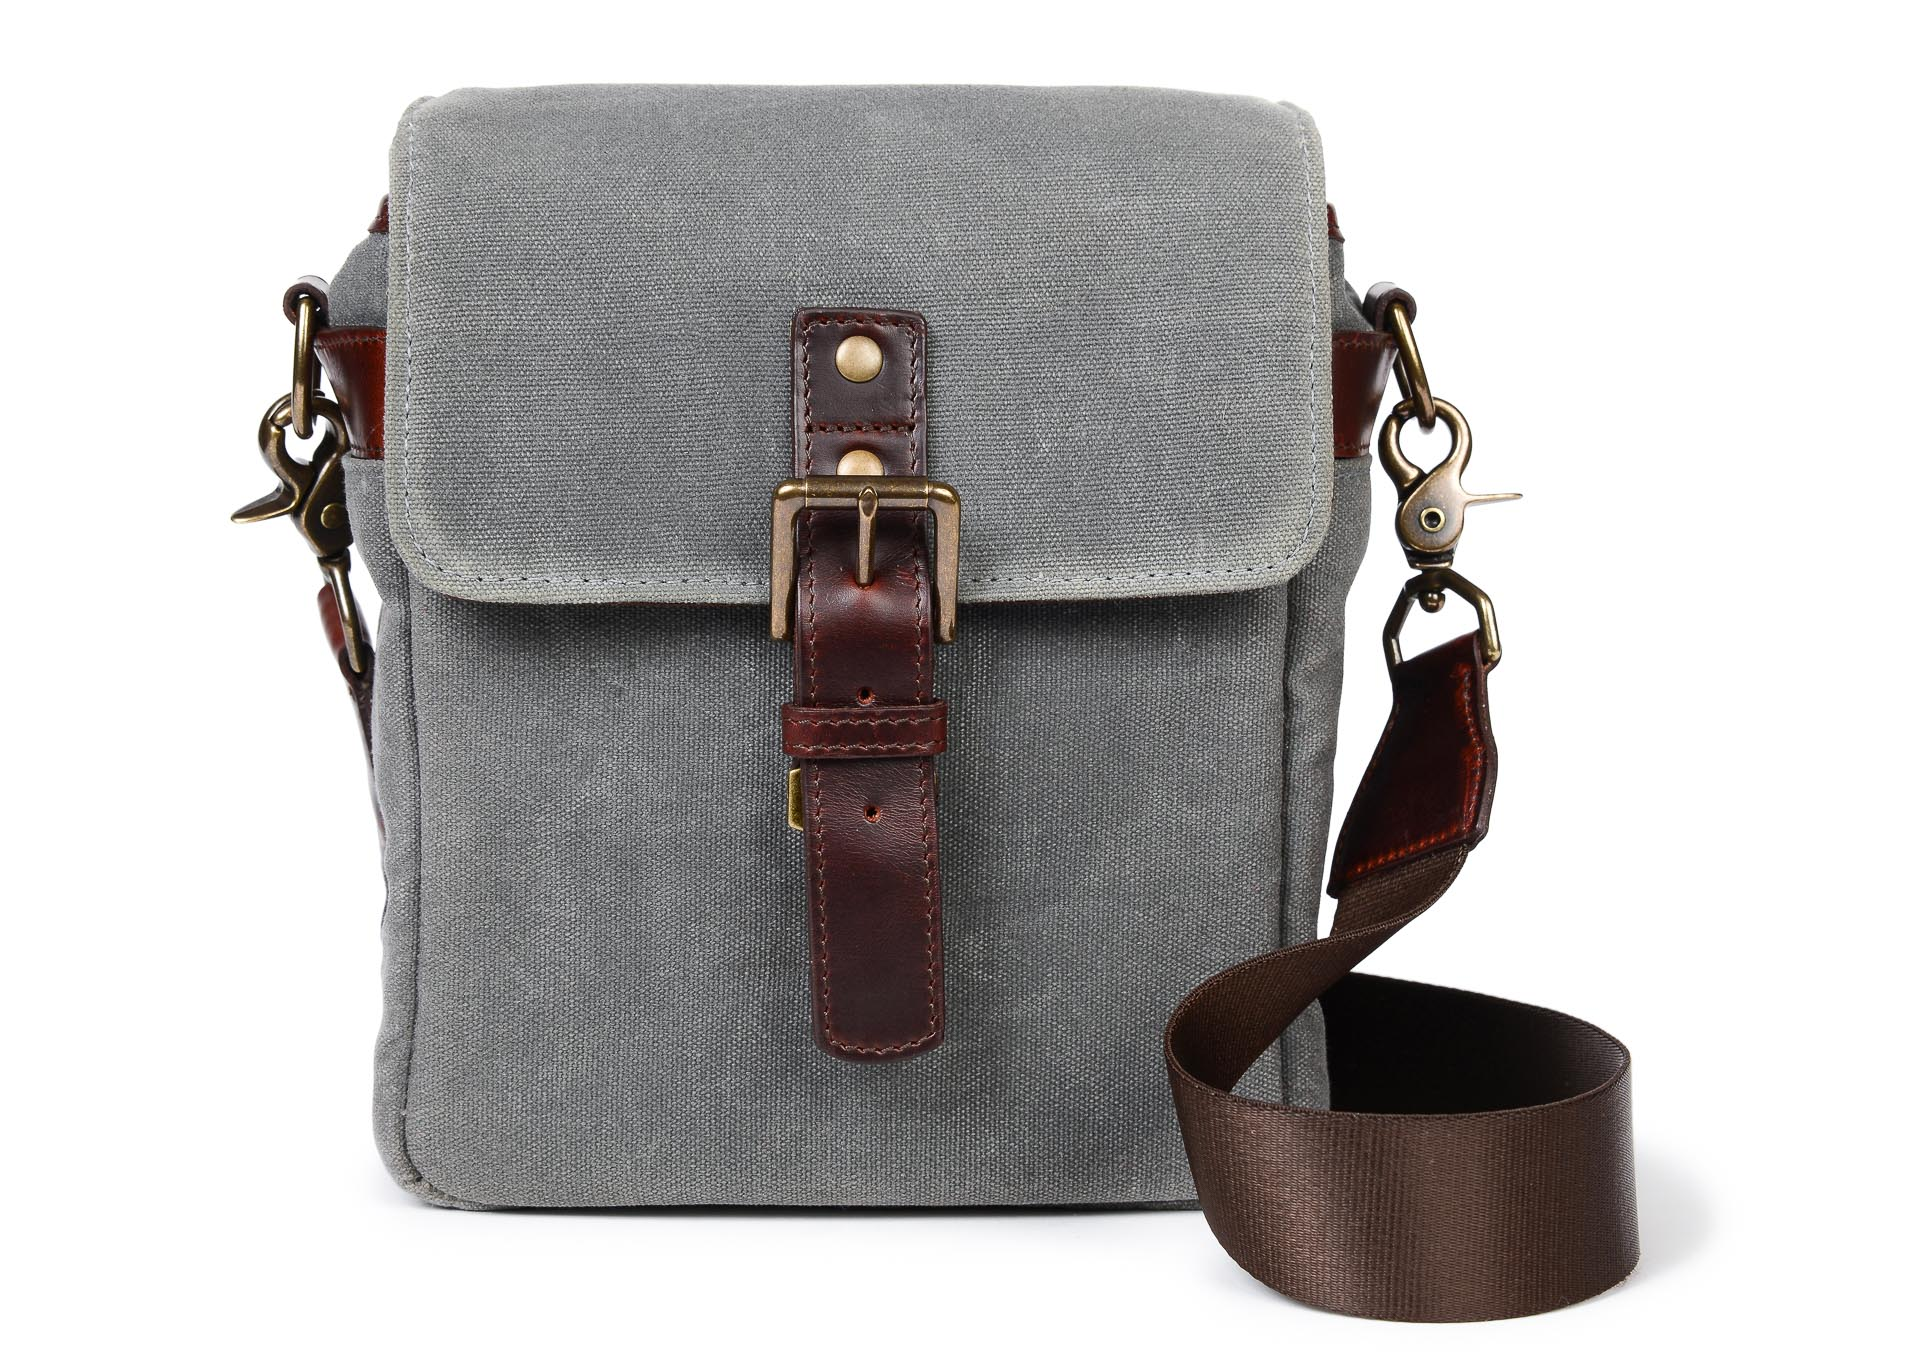 e1d44c16c01 Both the leather and canvas models are handcrafted and can fit a mirrorless  camera with lens attached, along with one or two additional lenses.